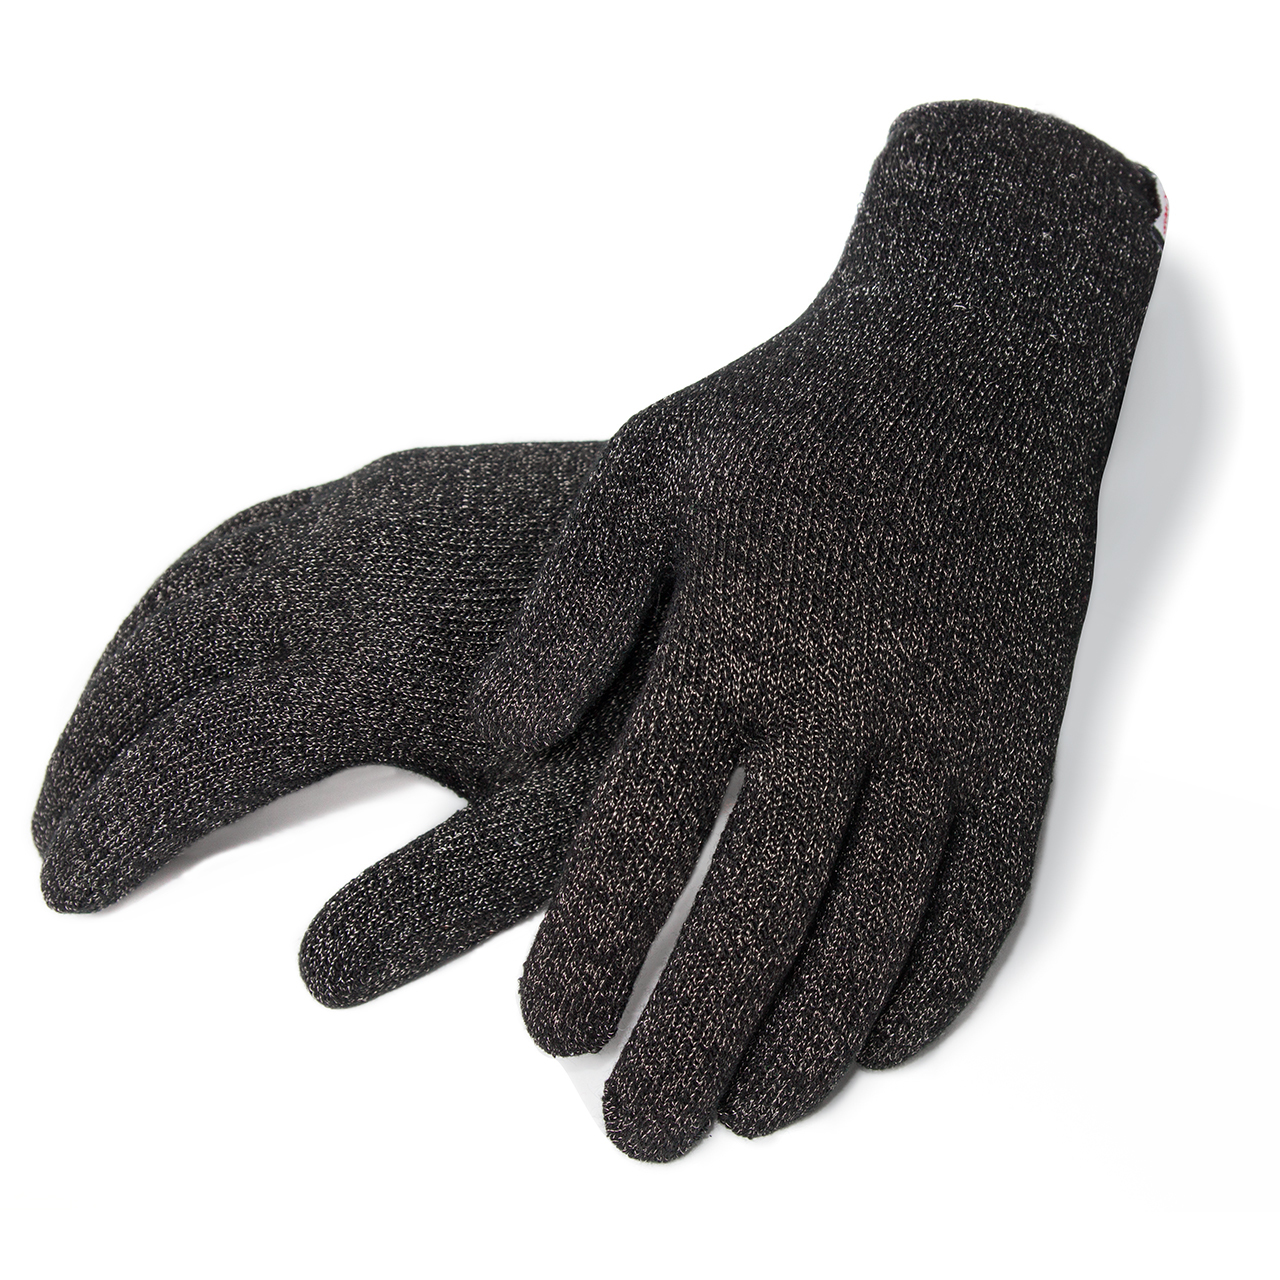 Agloves Touchscreen Texting Gloves for iPhone, iPad, Galaxy, Droid (Small/Medium)